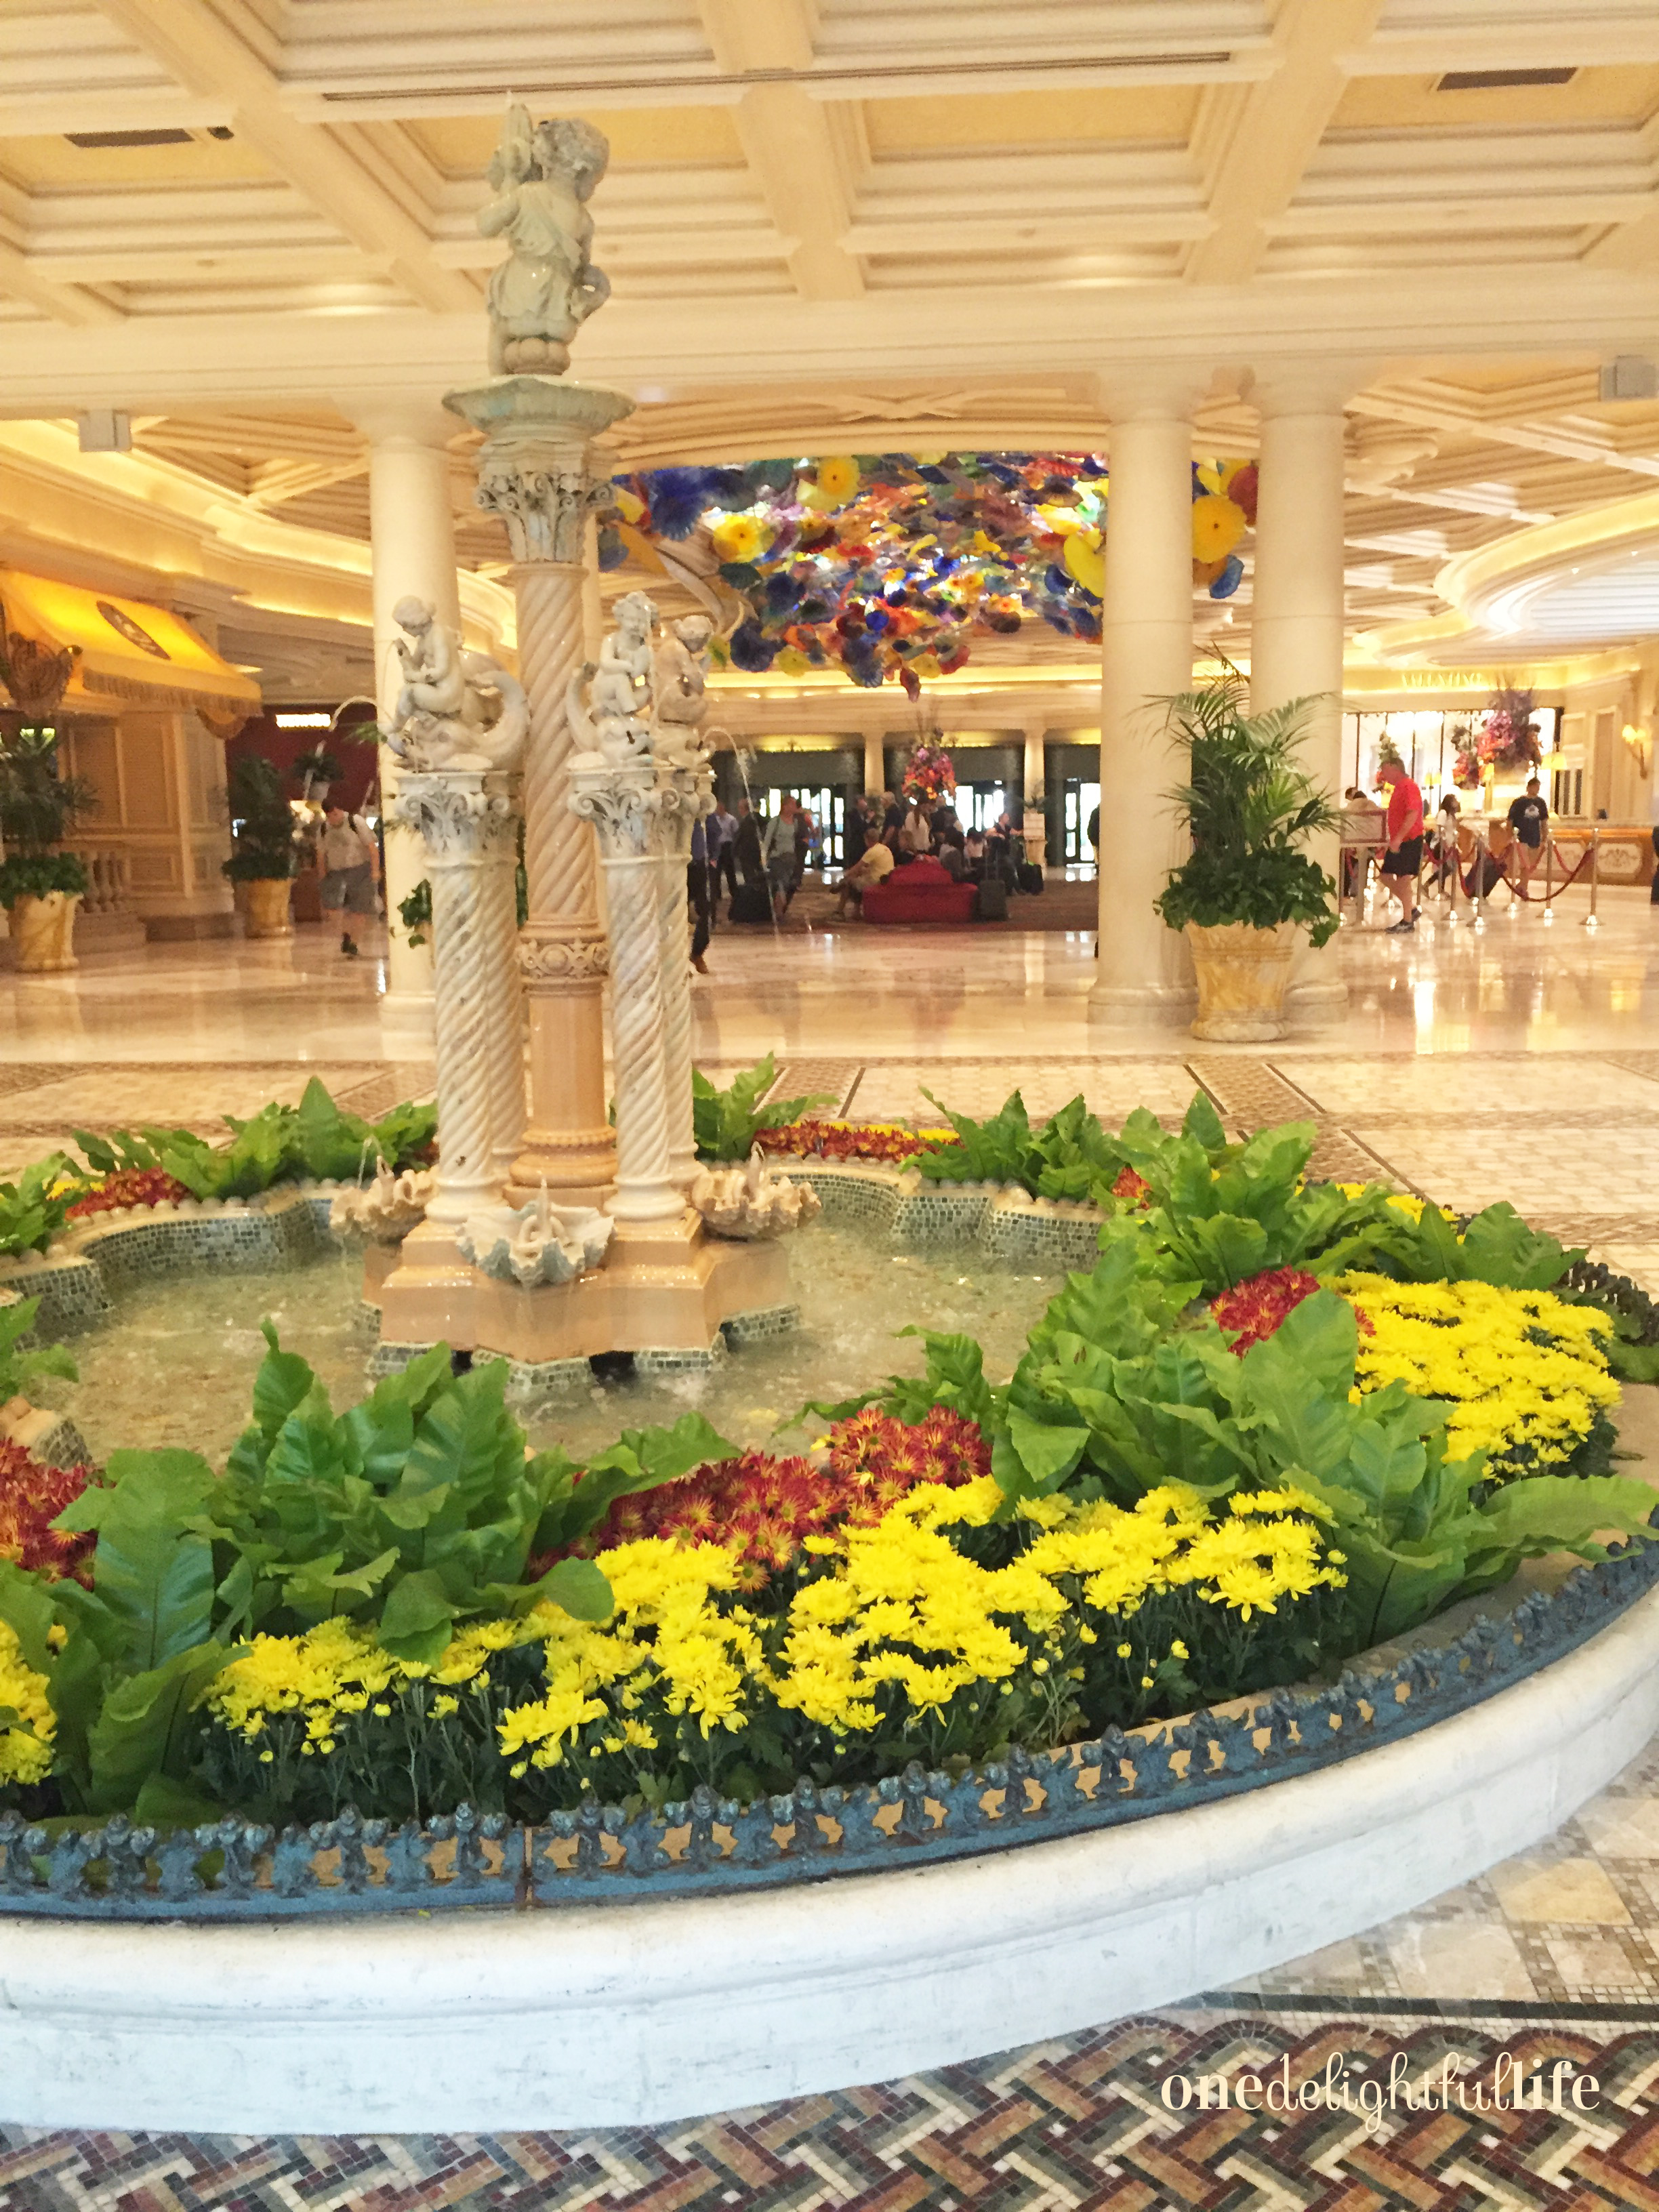 This water feature divides the hotel lobby check in area from the conservatory.